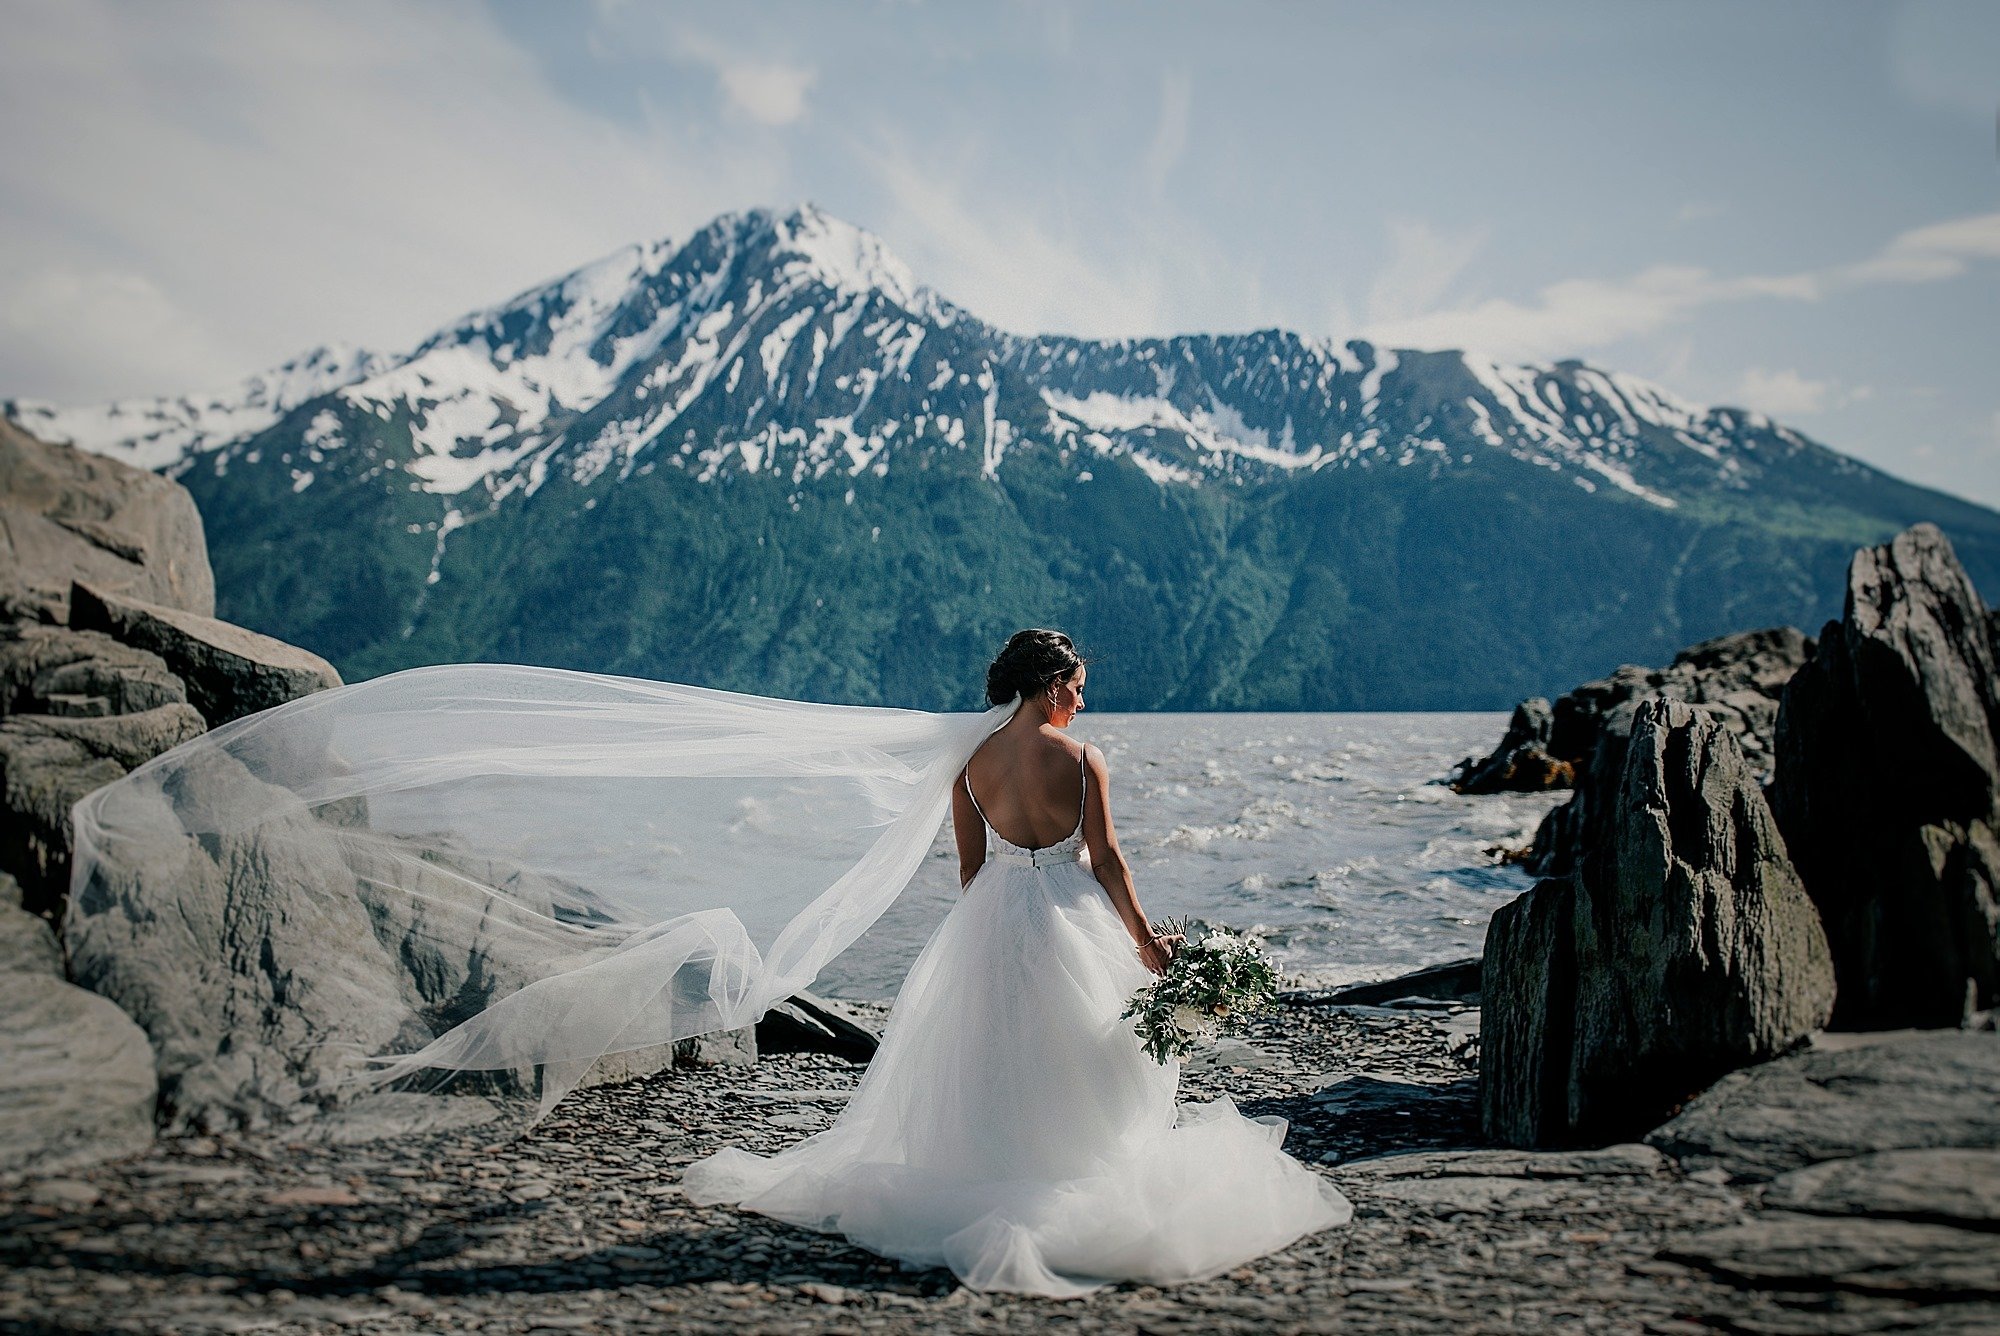 Alaska Elopement Packages